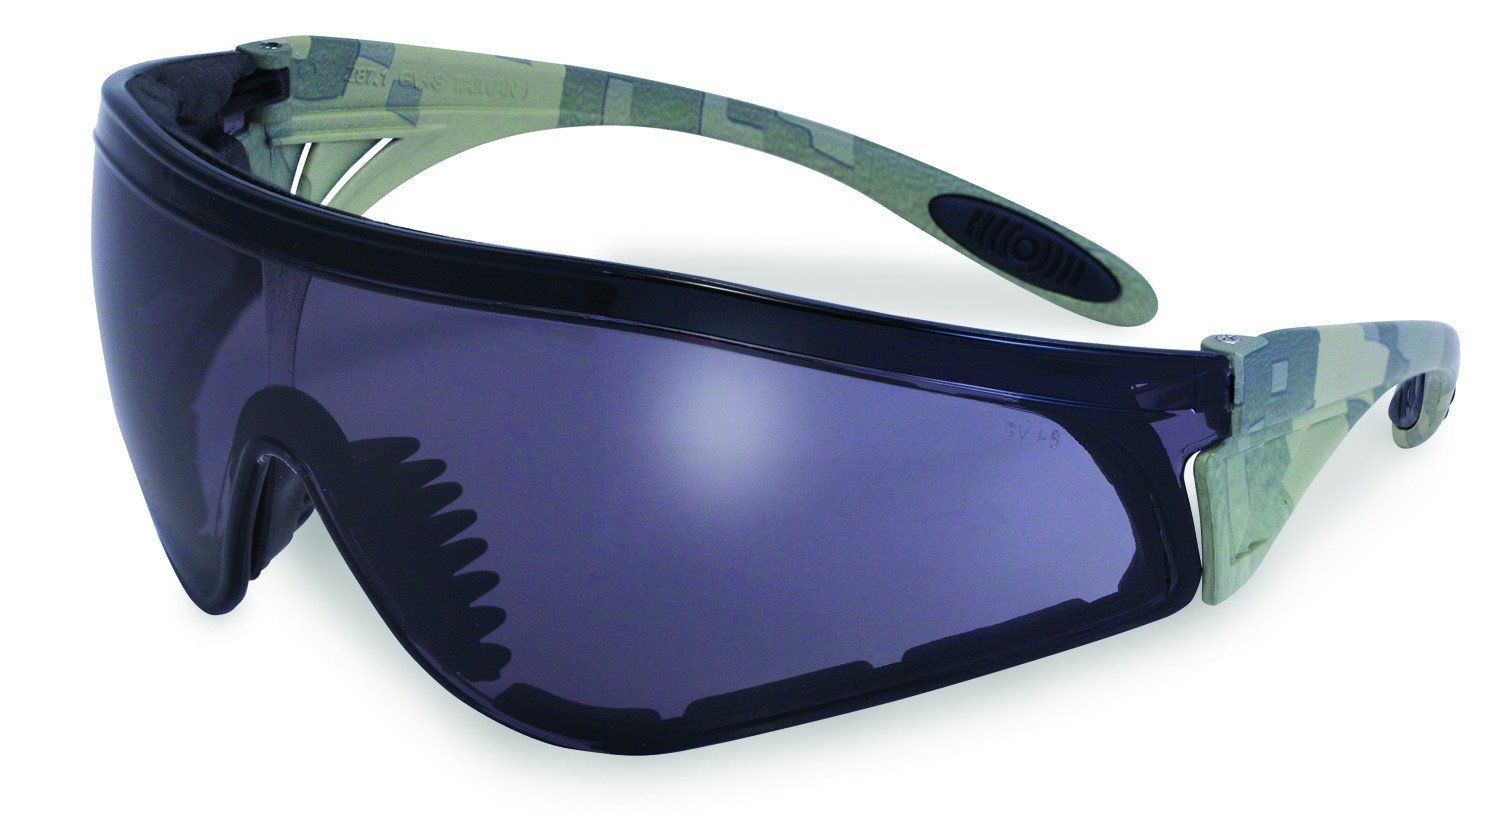 1330e2faa91e Yakima Peripheral Vision, Body Heat, Digital Camo, Face Shapes, Oakley  Sunglasses,